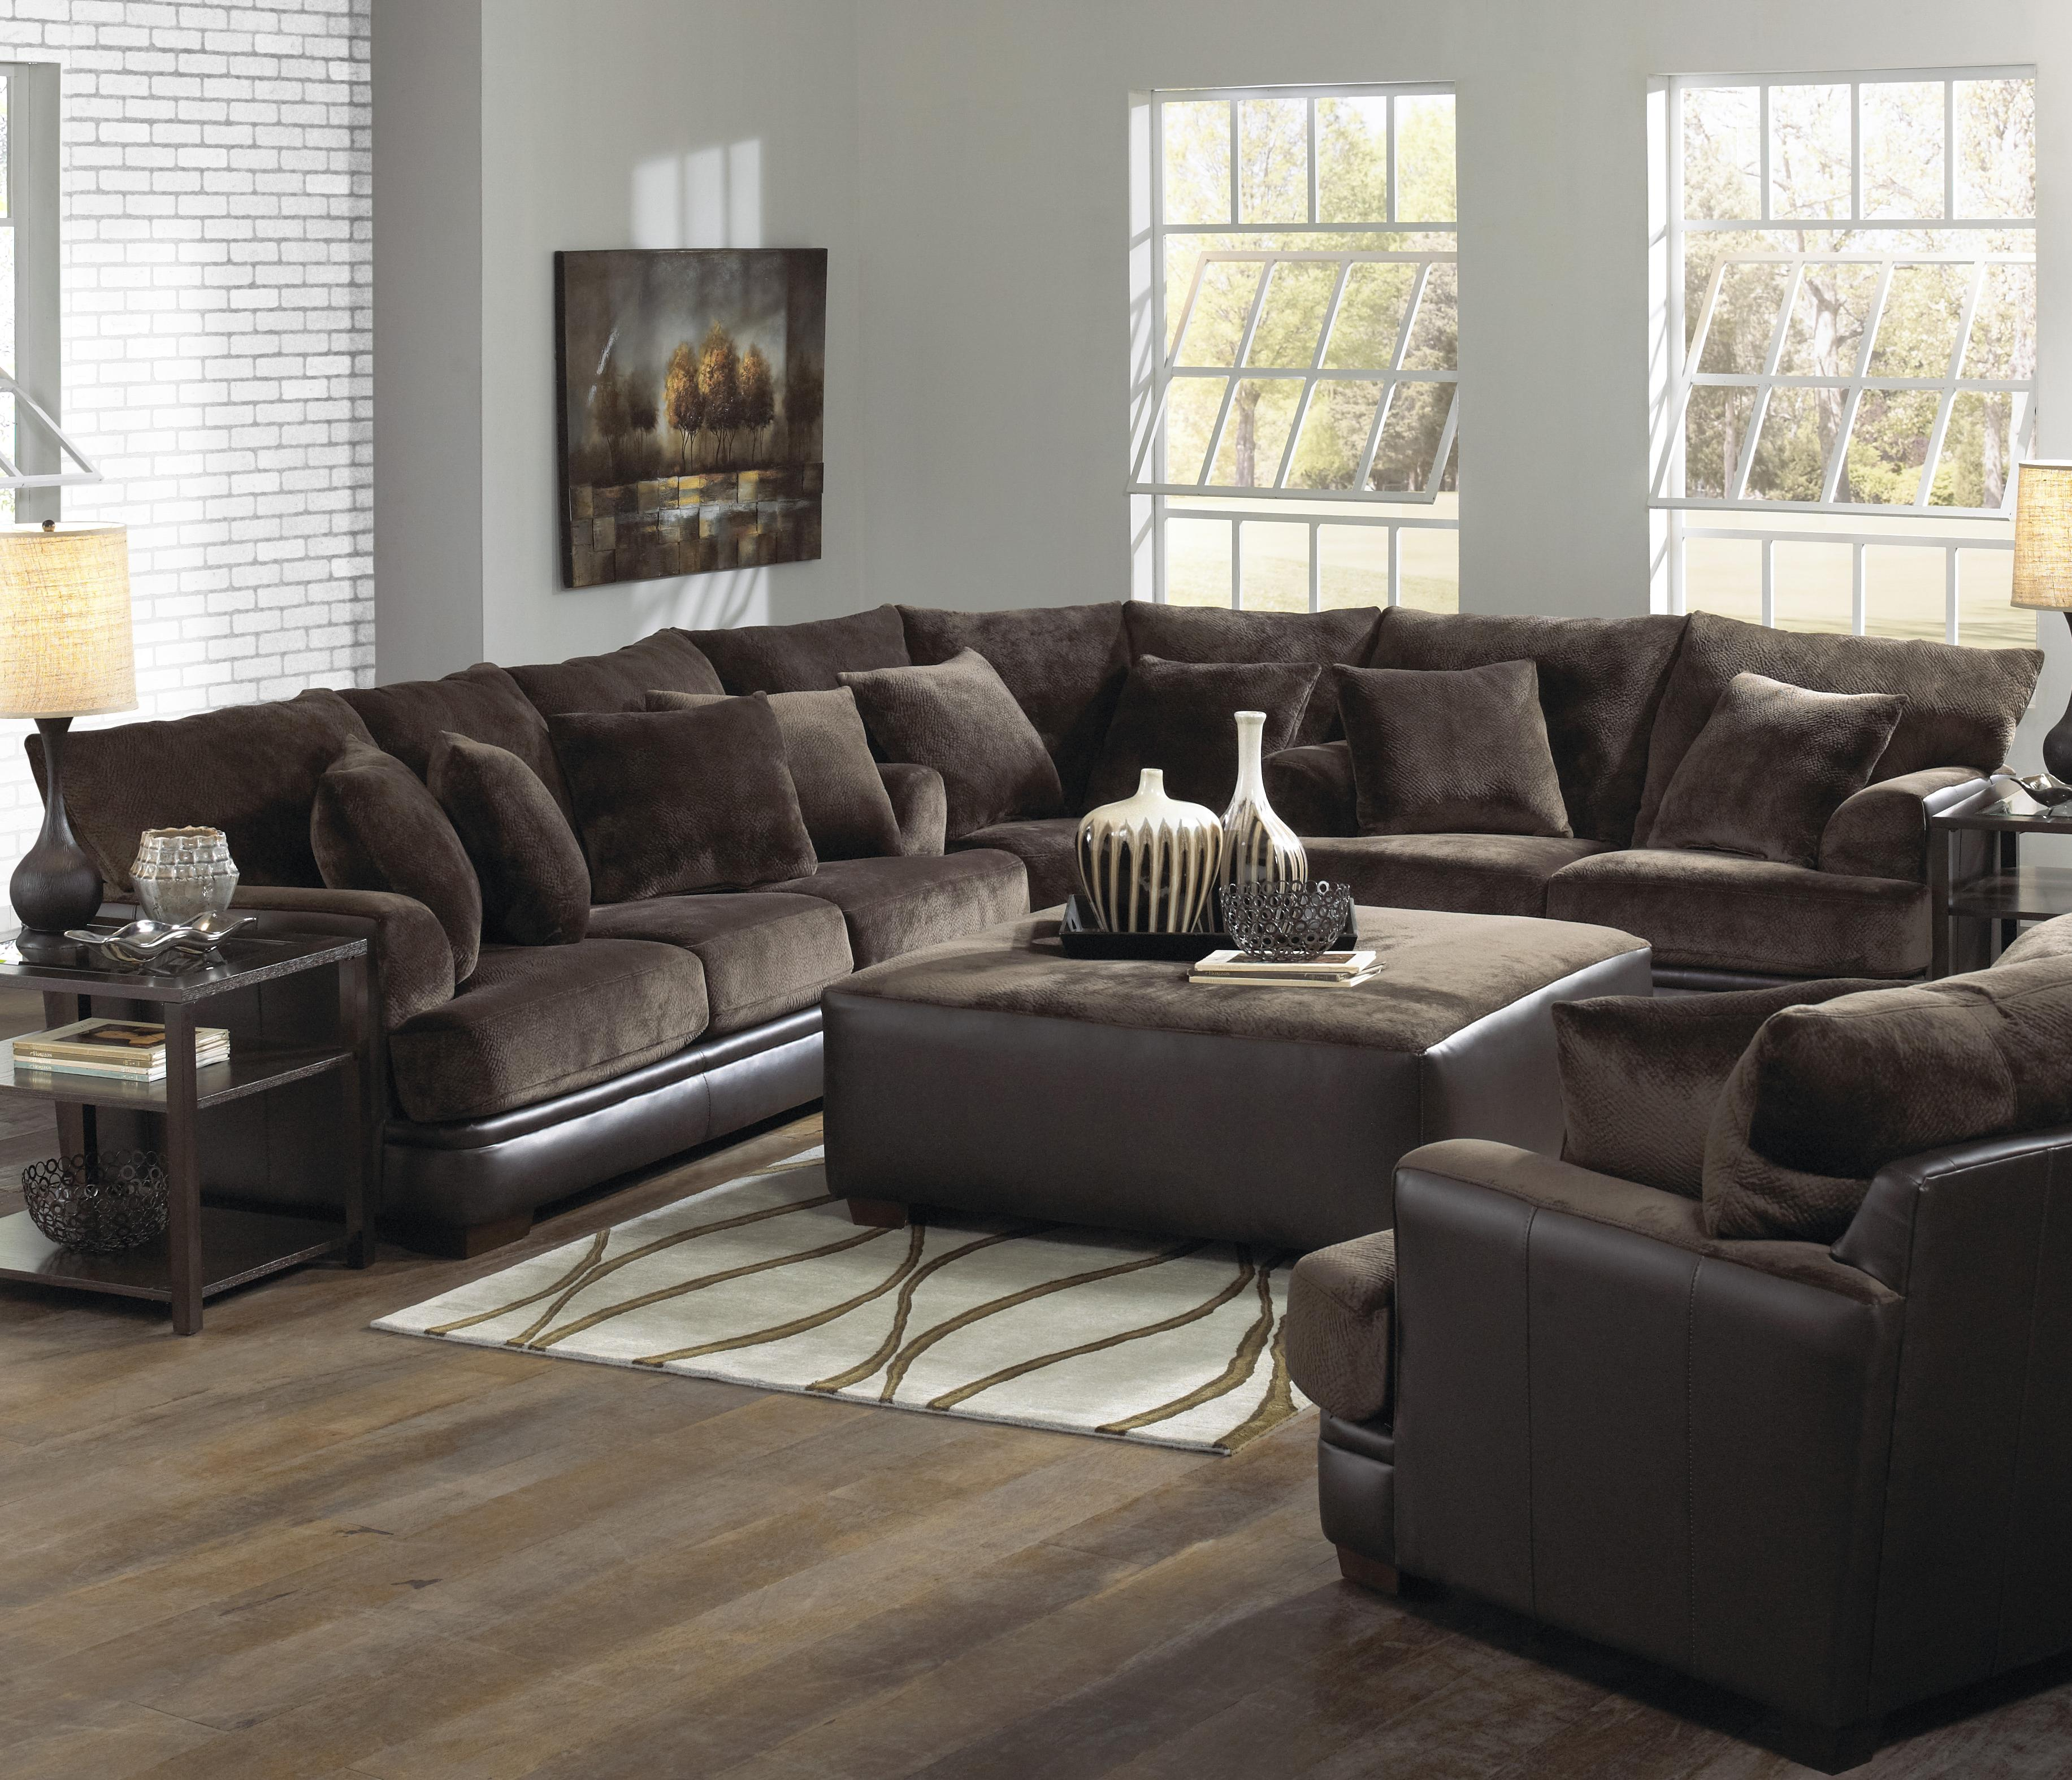 Large Sectional Sofas | Sectional Sofas for Sale | Sleeper Sofa with Chaise